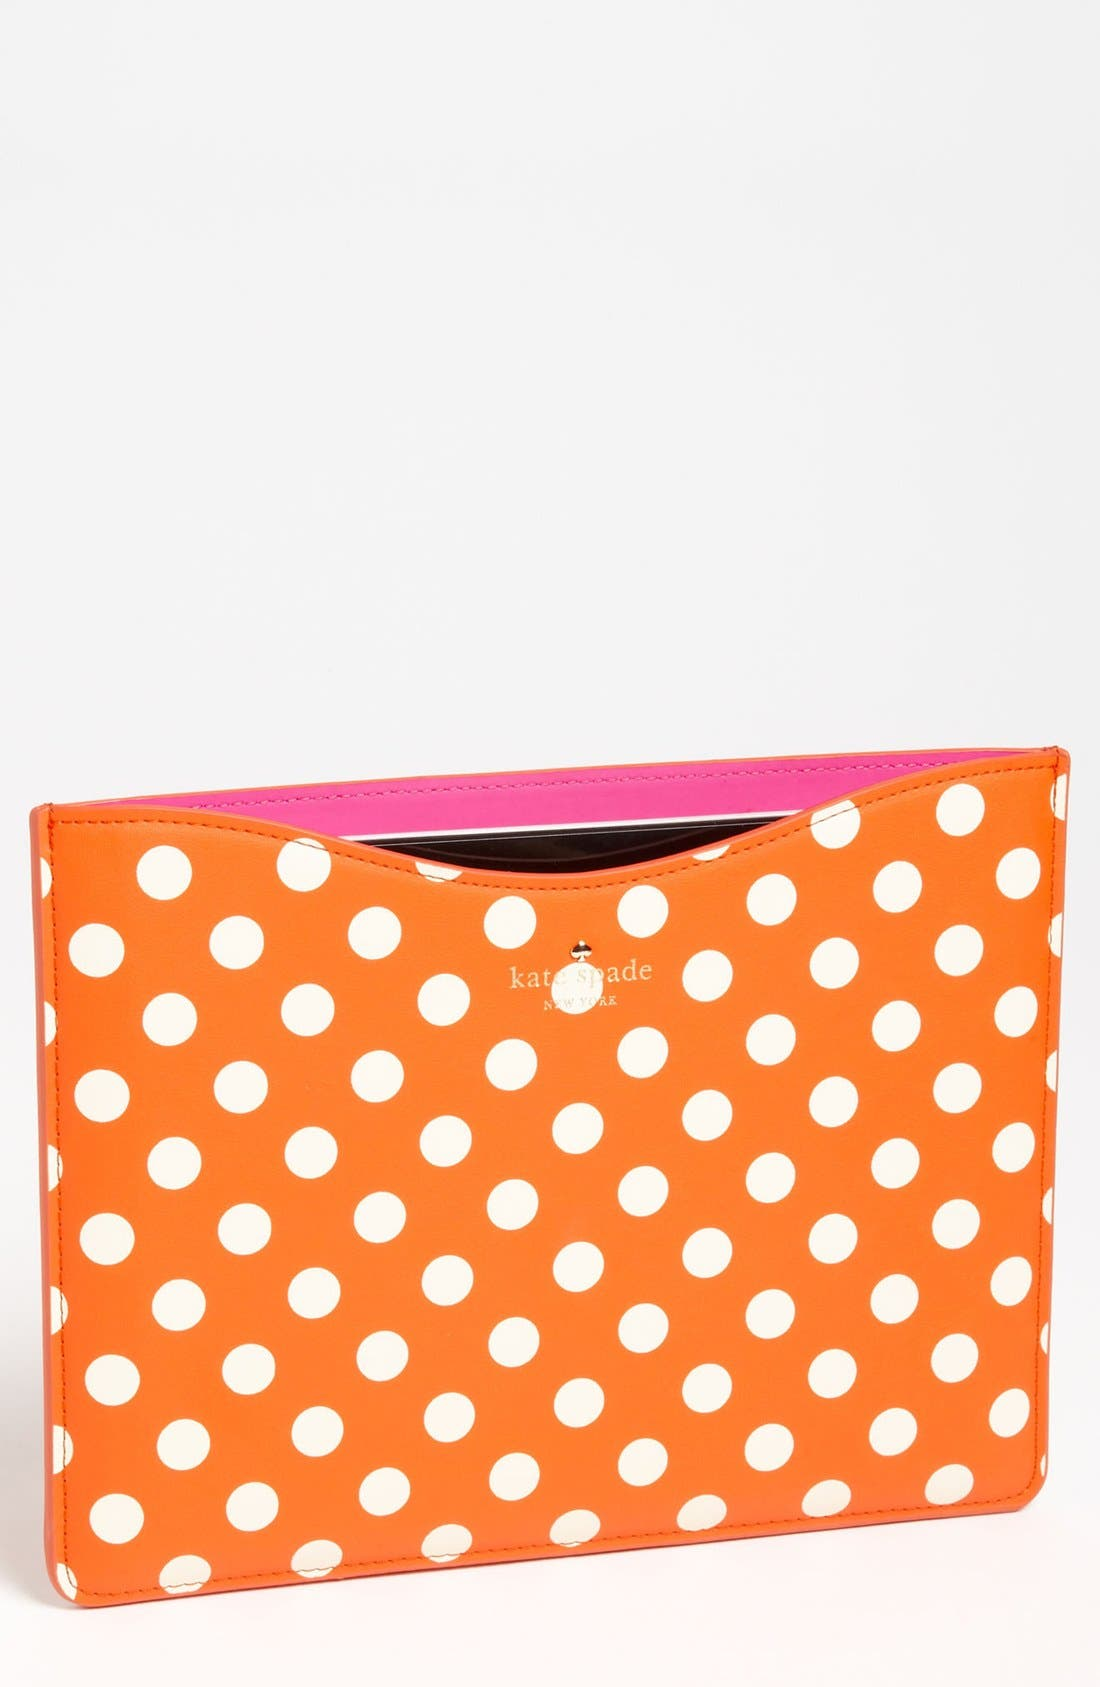 Alternate Image 1 Selected - kate spade new york 'le pavillion' iPad sleeve